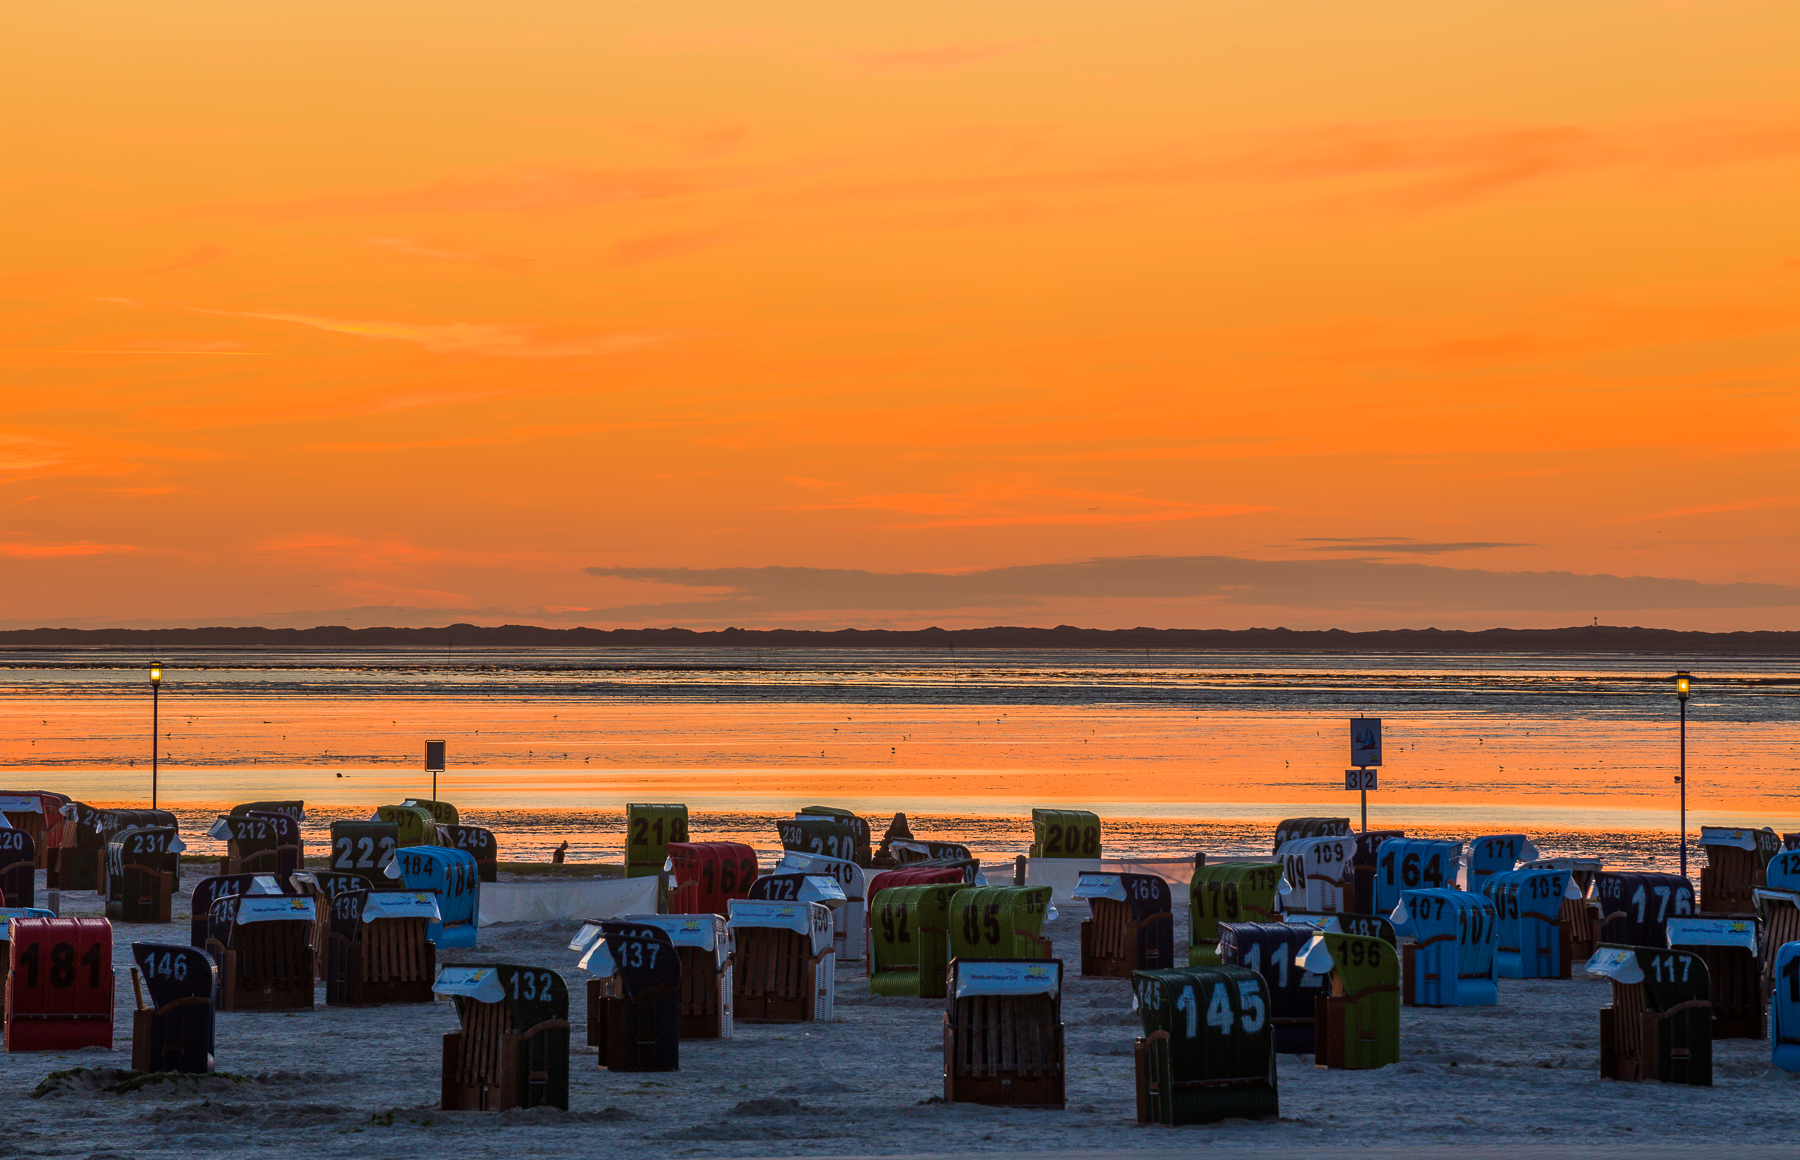 Afterglow at Neuharlingersiel Beach, Germany